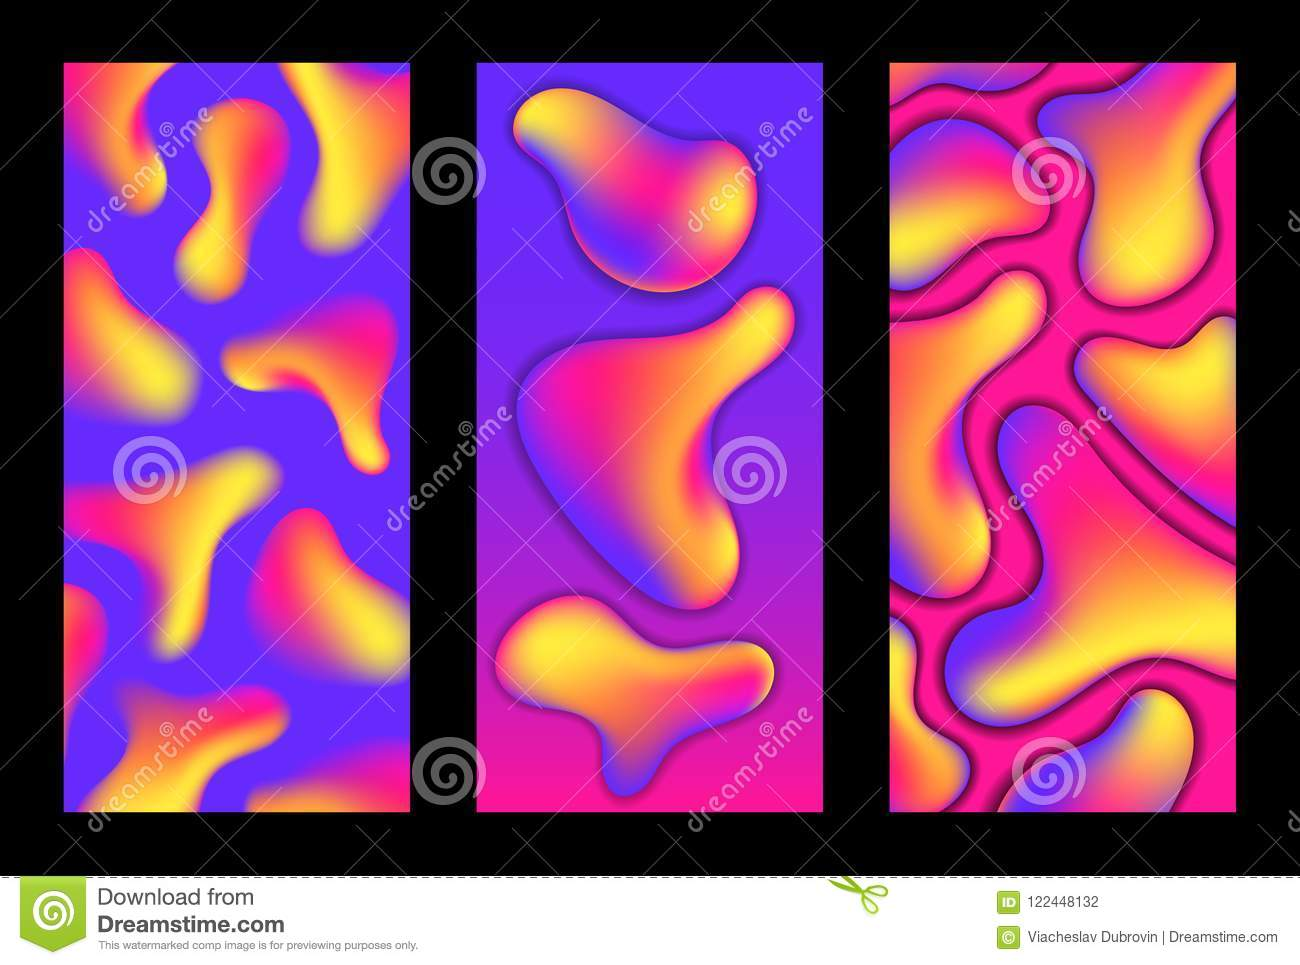 Smartphone Wallpapers With Gradient Shapes Neon Fluid